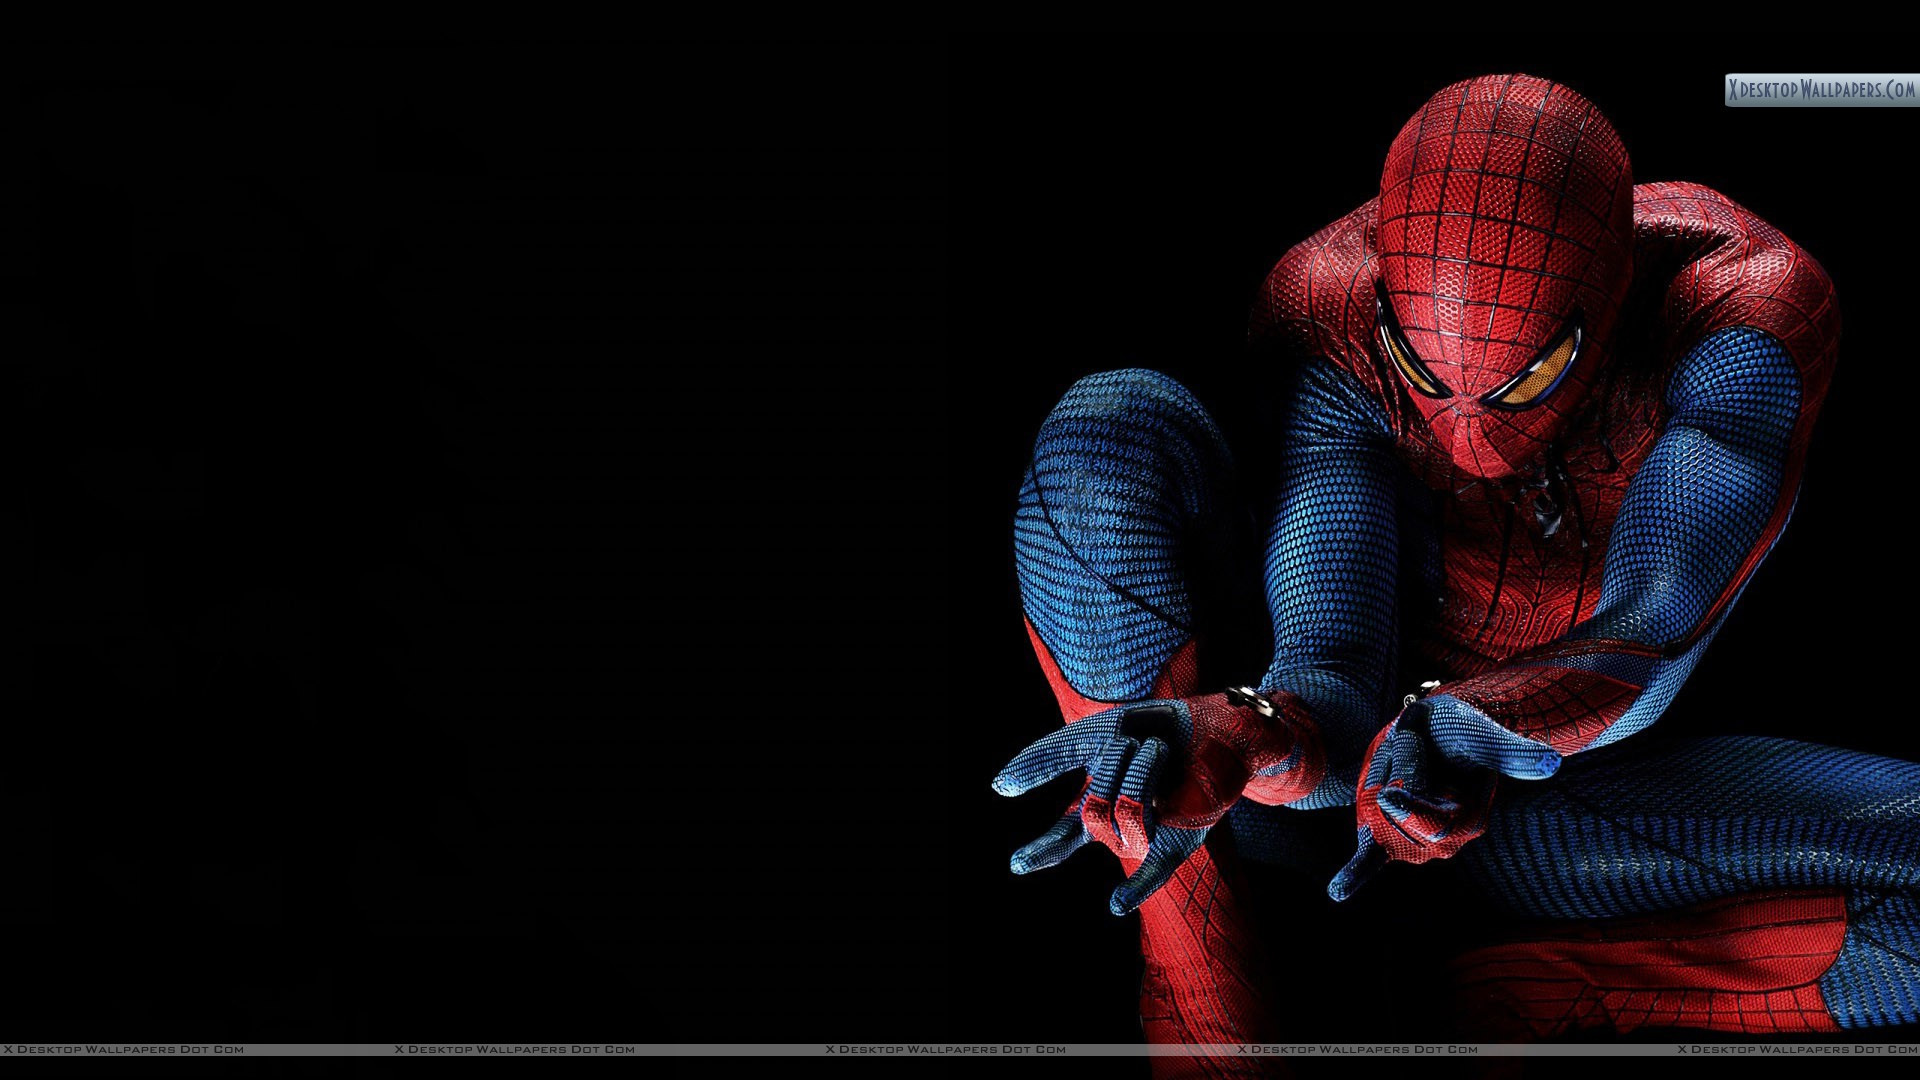 10 Best Spider Man 2099 Wallpaper Hd Full Hd 1920 1080 For: 40 Amazing Spiderman Wallpaper HD For PC